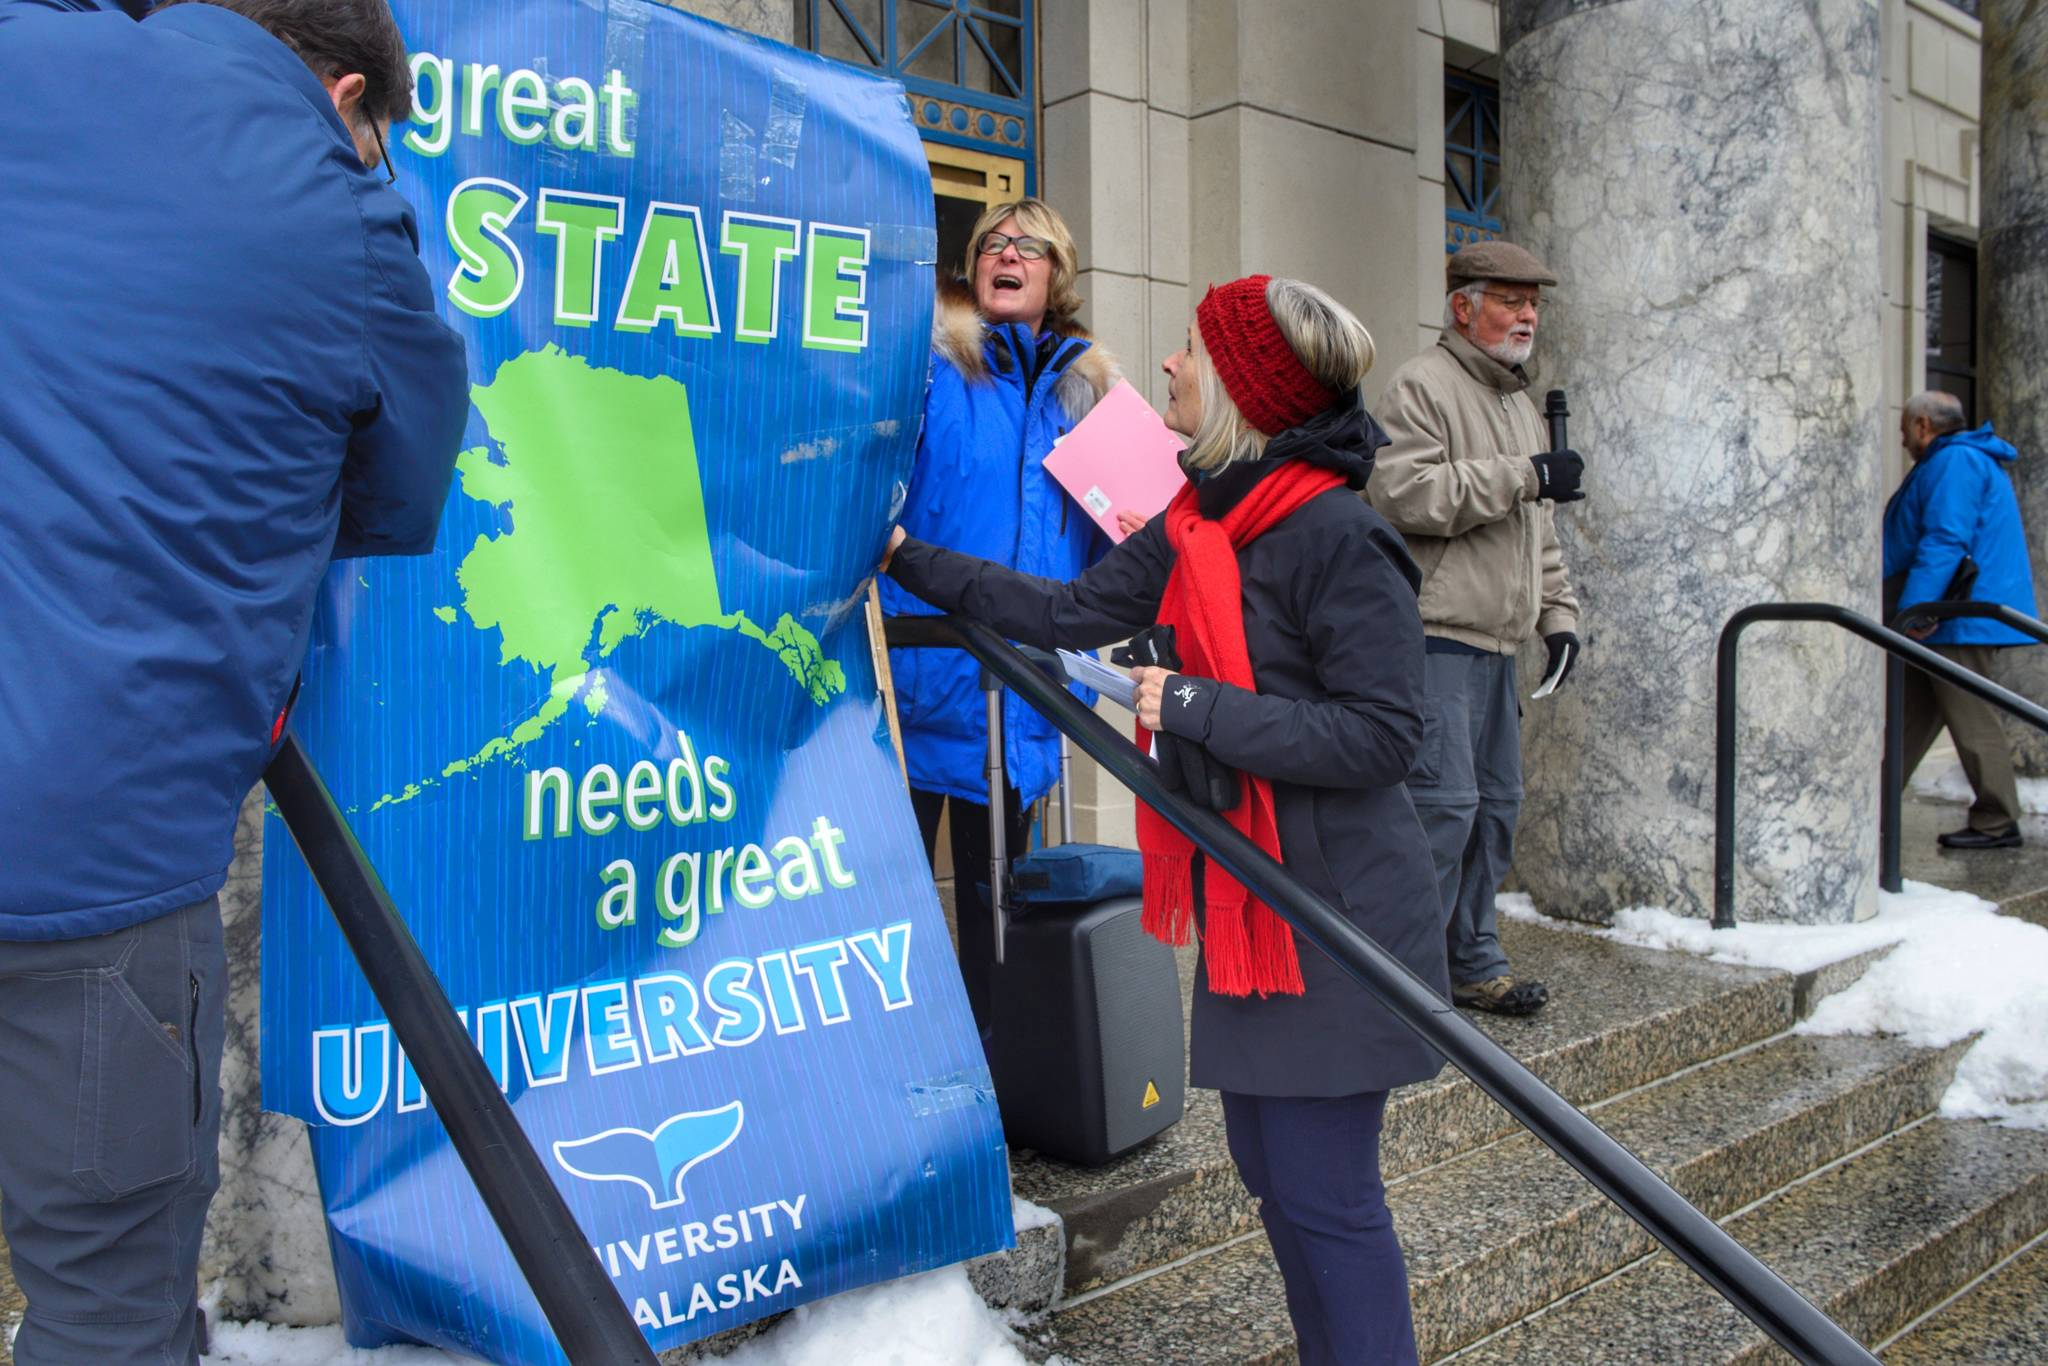 University of Alaska Southeast Instructor Jim Powell, left, his wife, former Rep. Beth Kerttula, and Rep. Andi Story, D-Juneau, right, stand up a university sign as former Chancellor John Pugh speaks at a rally for funding the University of Alaska in front of the Capitol on Wednesday, Feb. 13, 2019. (Michael Penn | Juneau Empire)